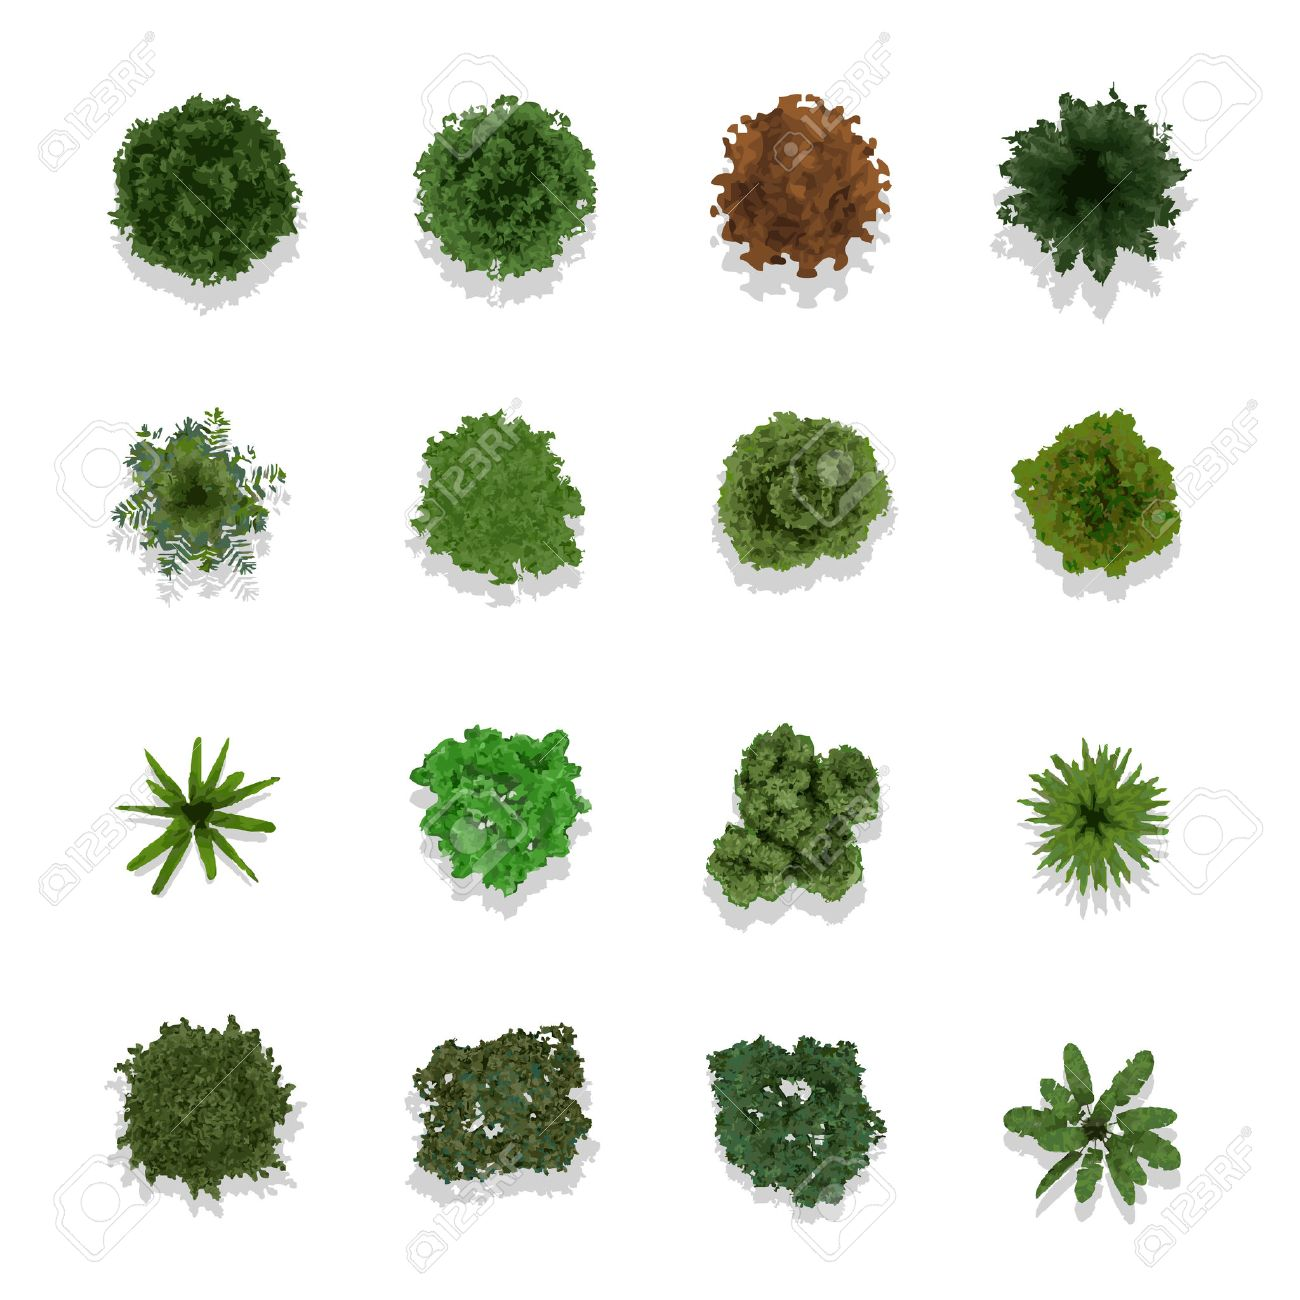 Trees top view for landscape vector illustration Stock Vector - 43216656